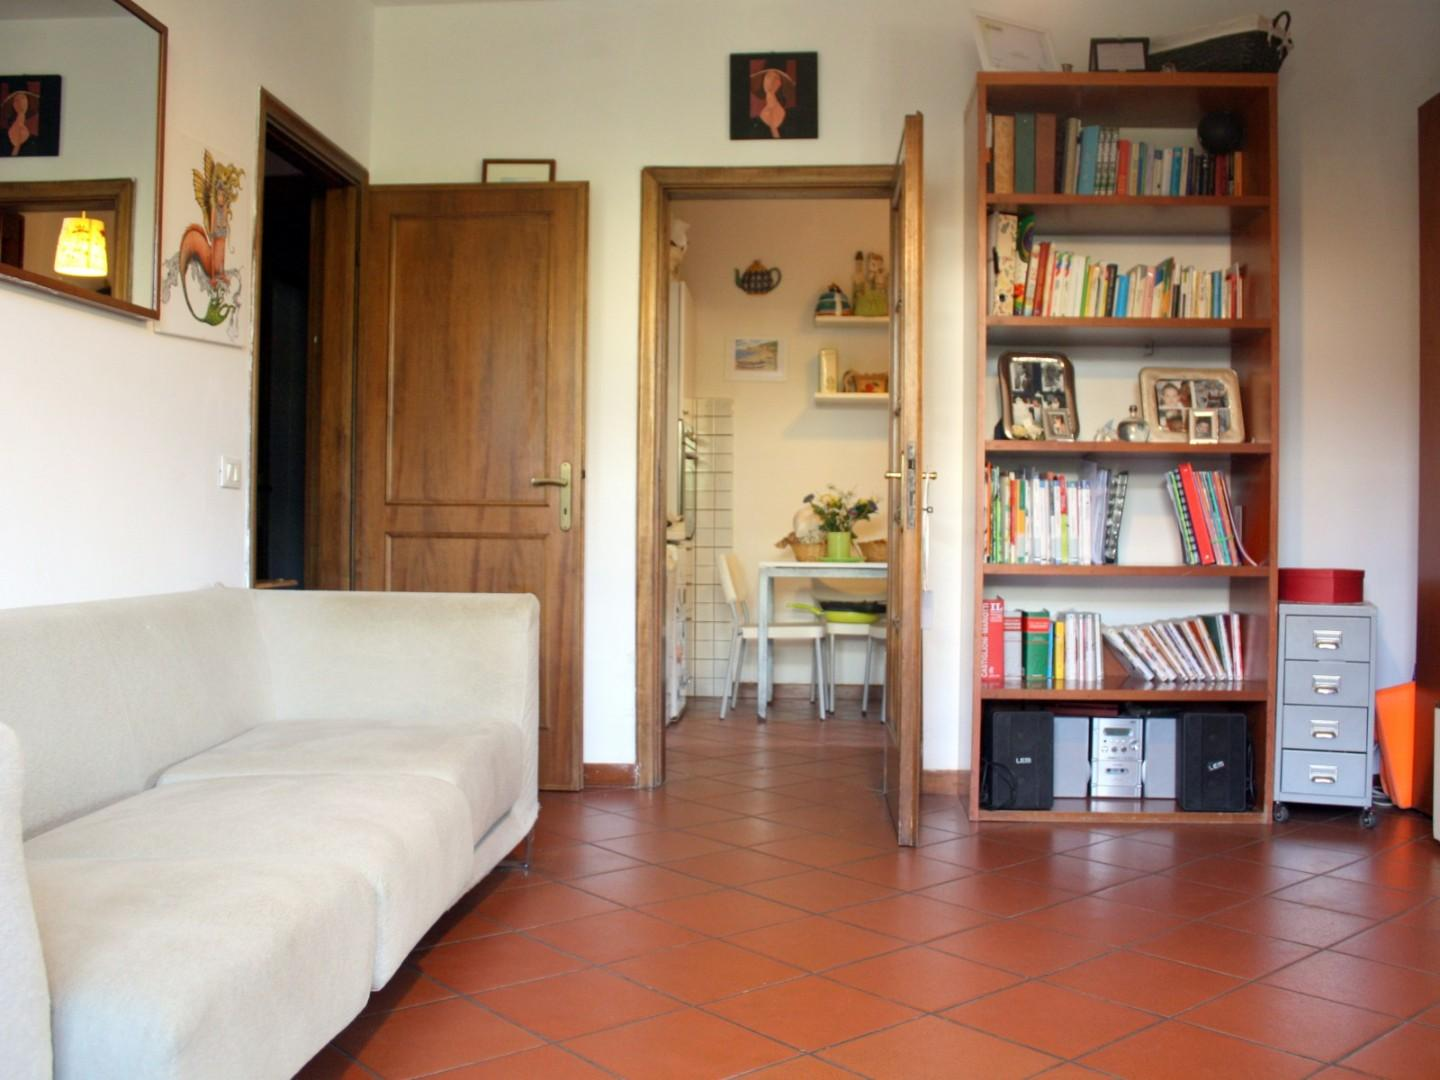 Three-family cottage for sale in Camaiore (LU)